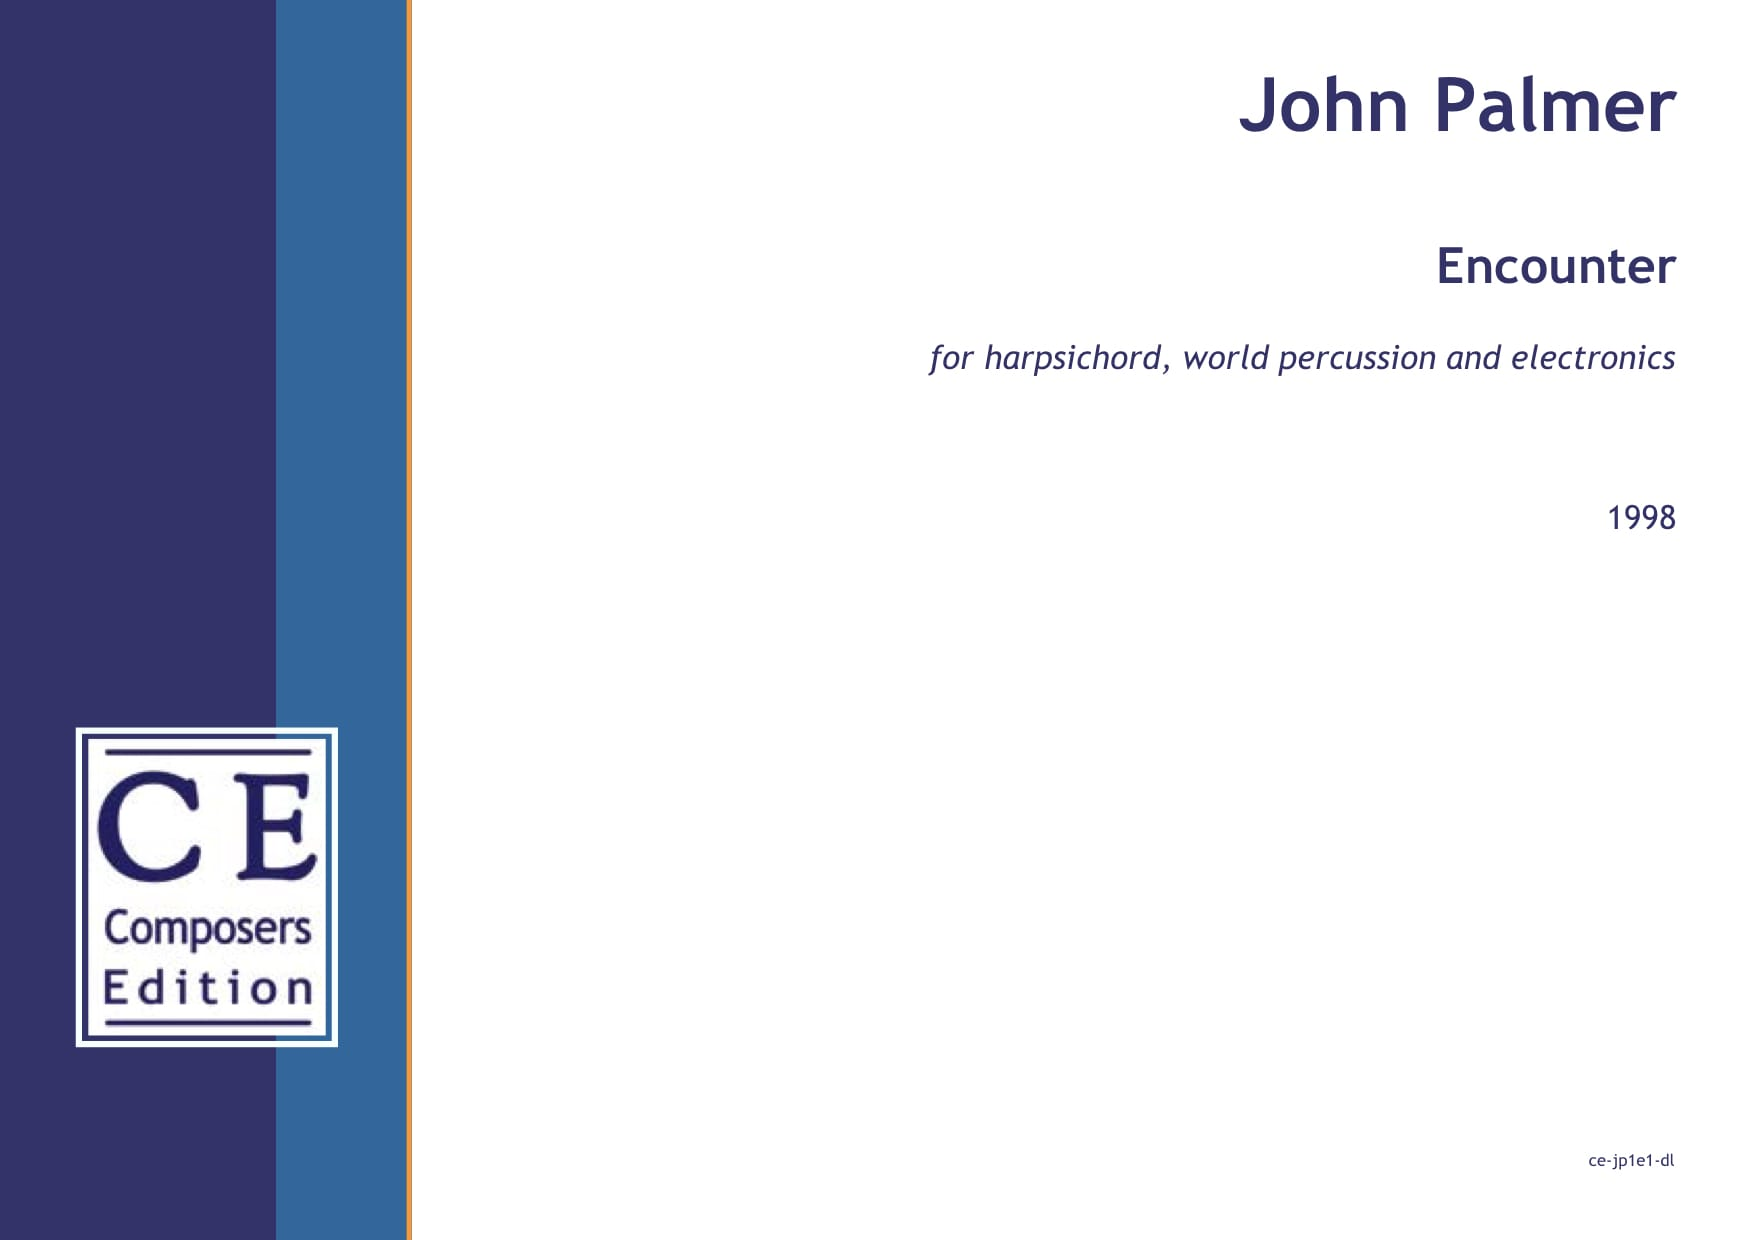 John Palmer: Encounter for harpsichord, world percussion and electronics